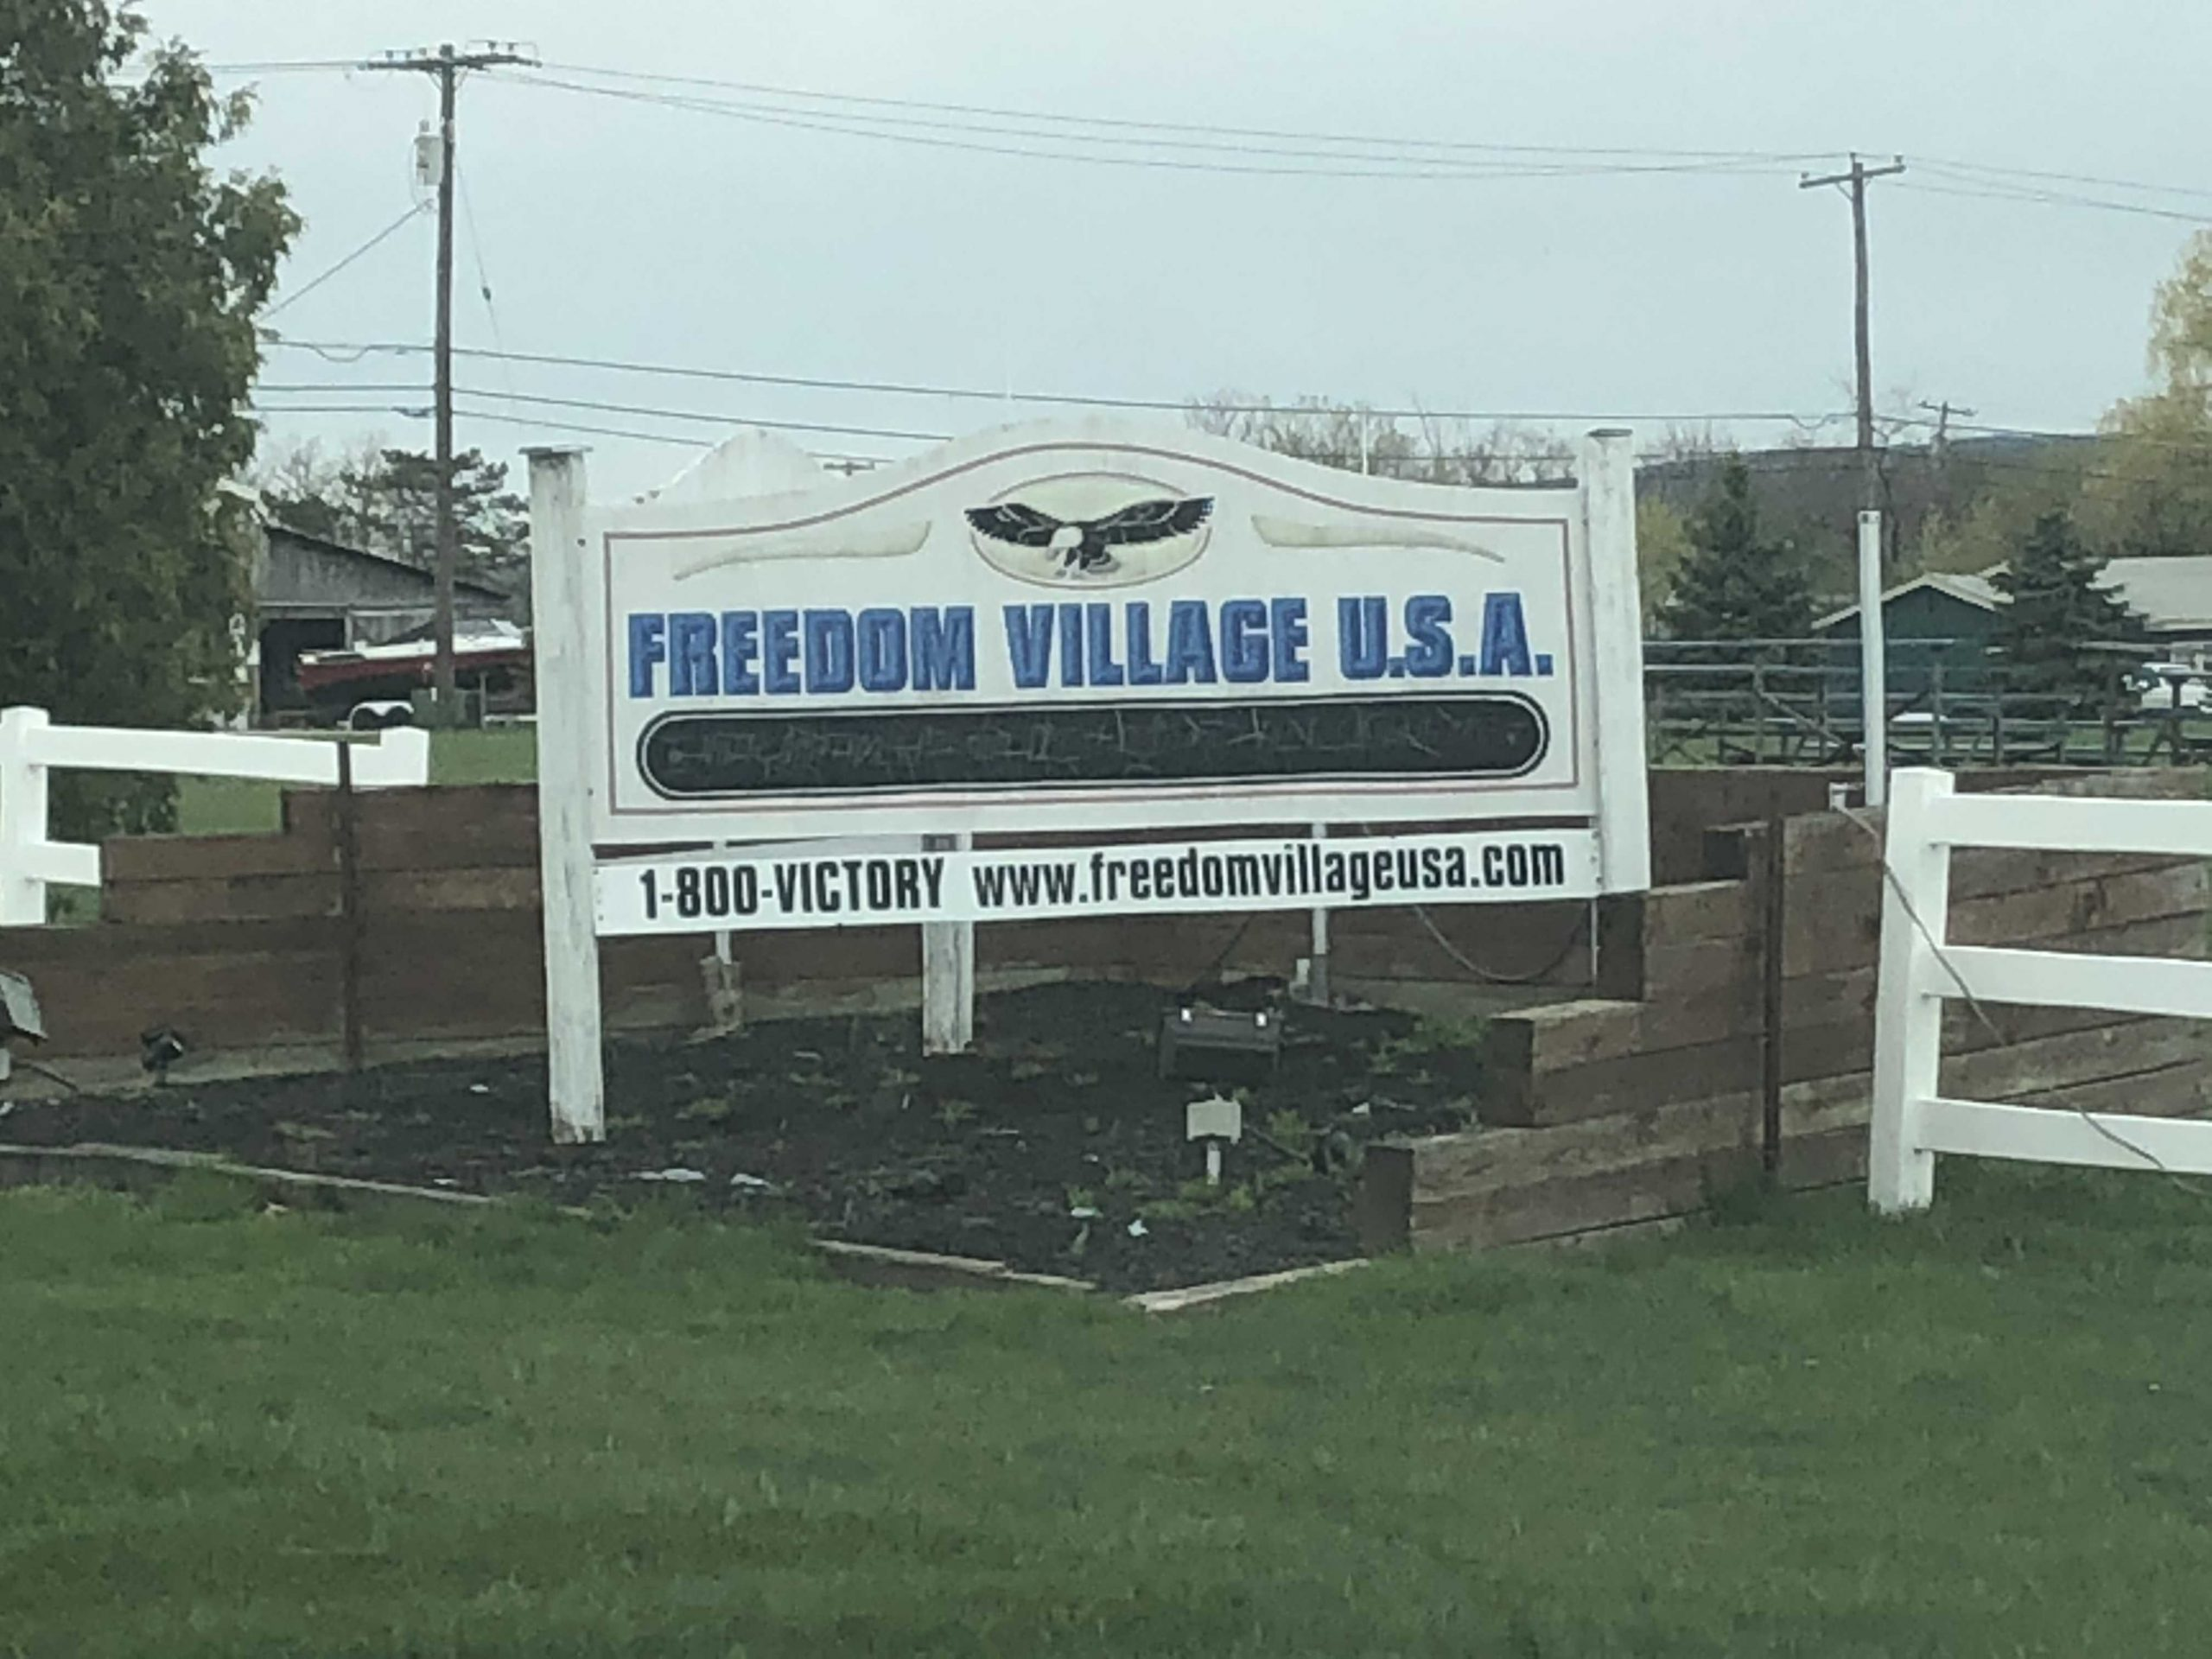 New Freedom Village land owners plan to sell parcels